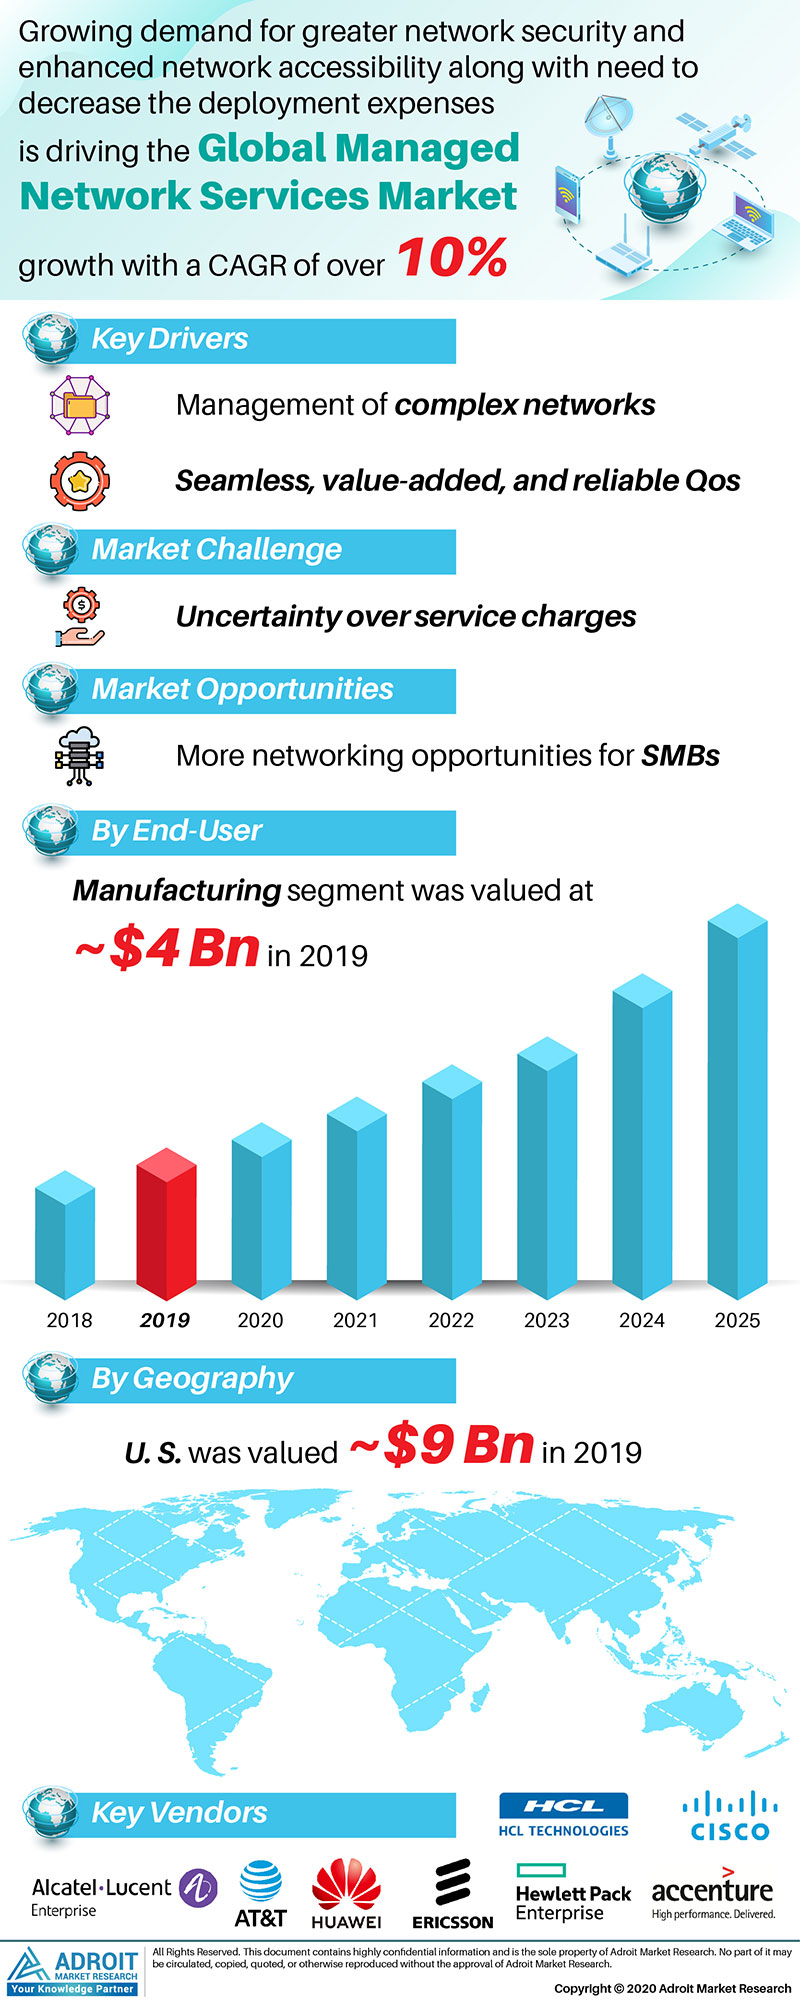 Managed Network Services Market Size 2017 By Application, Product, Region and Forecast 2019 to 2025